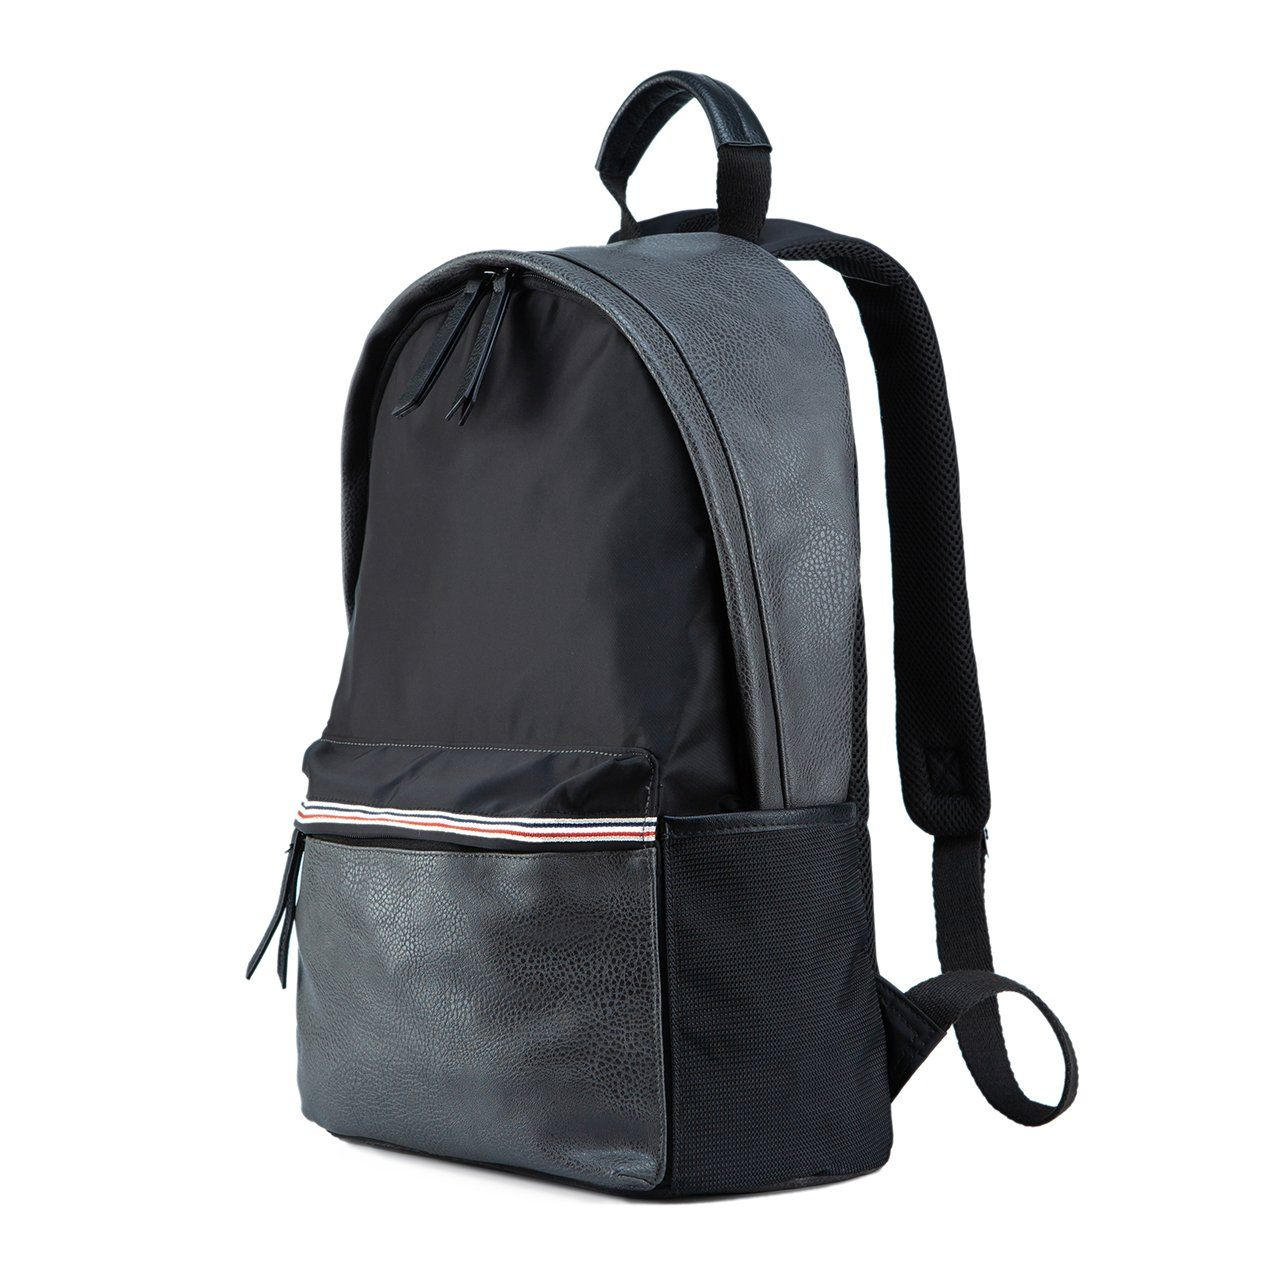 Backpack - Trey Two Tone Backpack